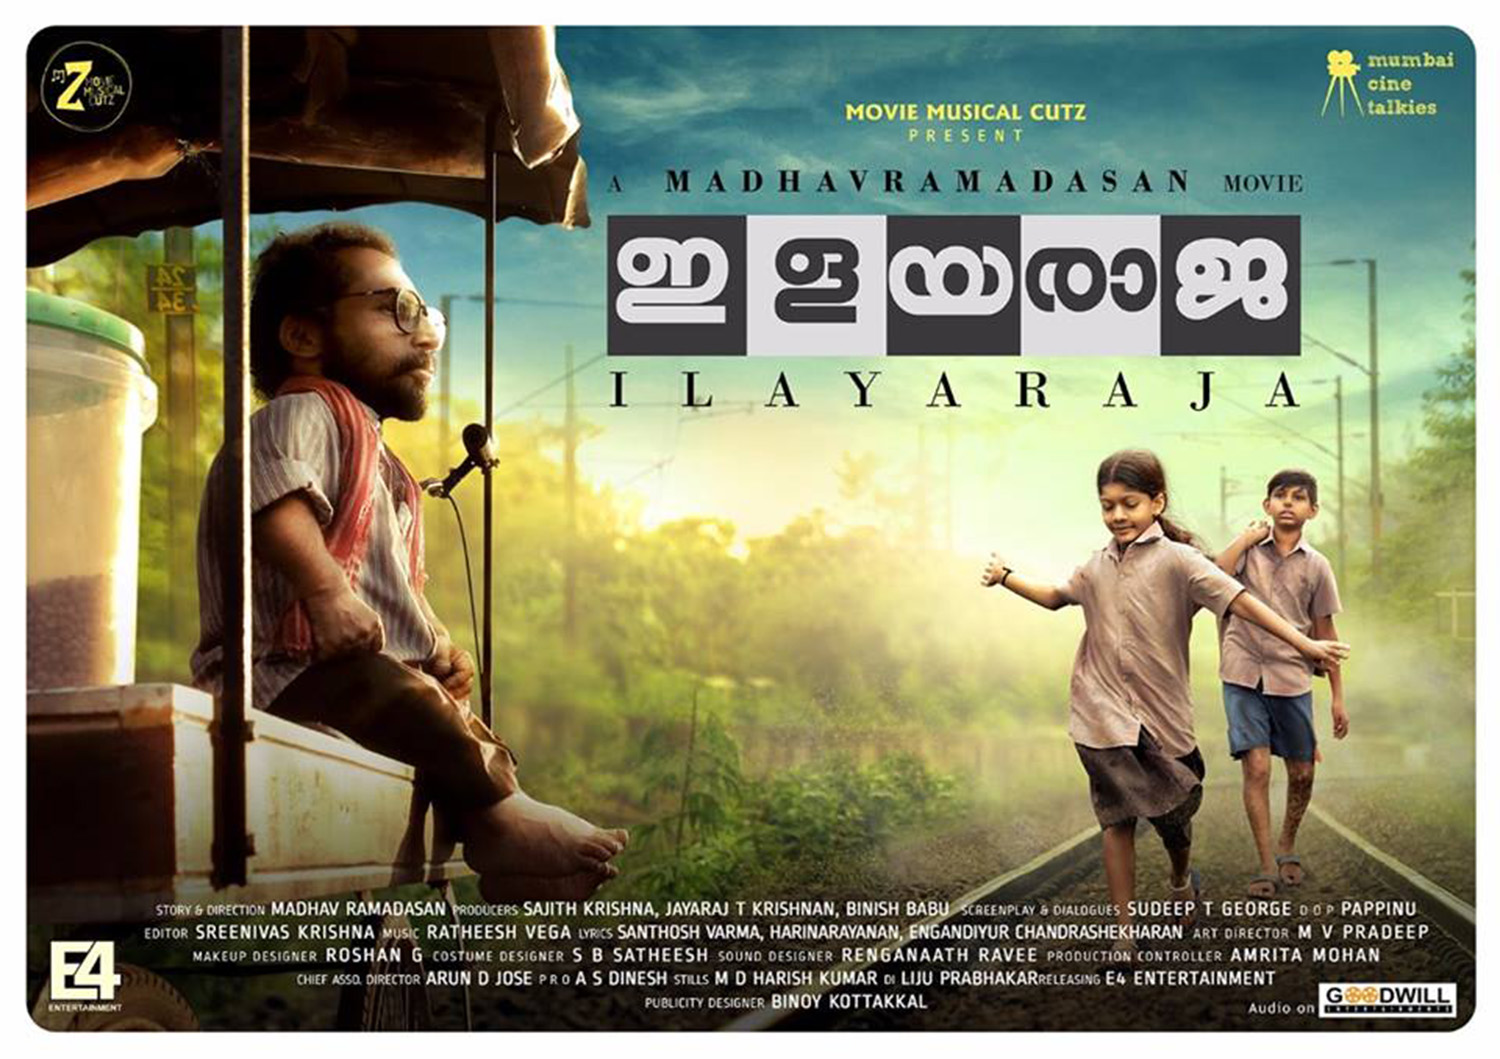 ilayaraja movie review,ilayaraja malayalam movie review,Guinness Pakru,Guinness Pakru's ilayaraja movie review,Guinness Pakru's new movie,ilayaraja movie hit or flop,ilayaraja movie kerala box office report,madhava ramadasan,Guinness Pakru madhava ramadasan movie,madhava ramadasan's new movie,guinness pakru harisree ashokan ilayaraja malayalam movie poster,ilayaraja malayalam movie poster,madhava ramadasan's ilayaraja review